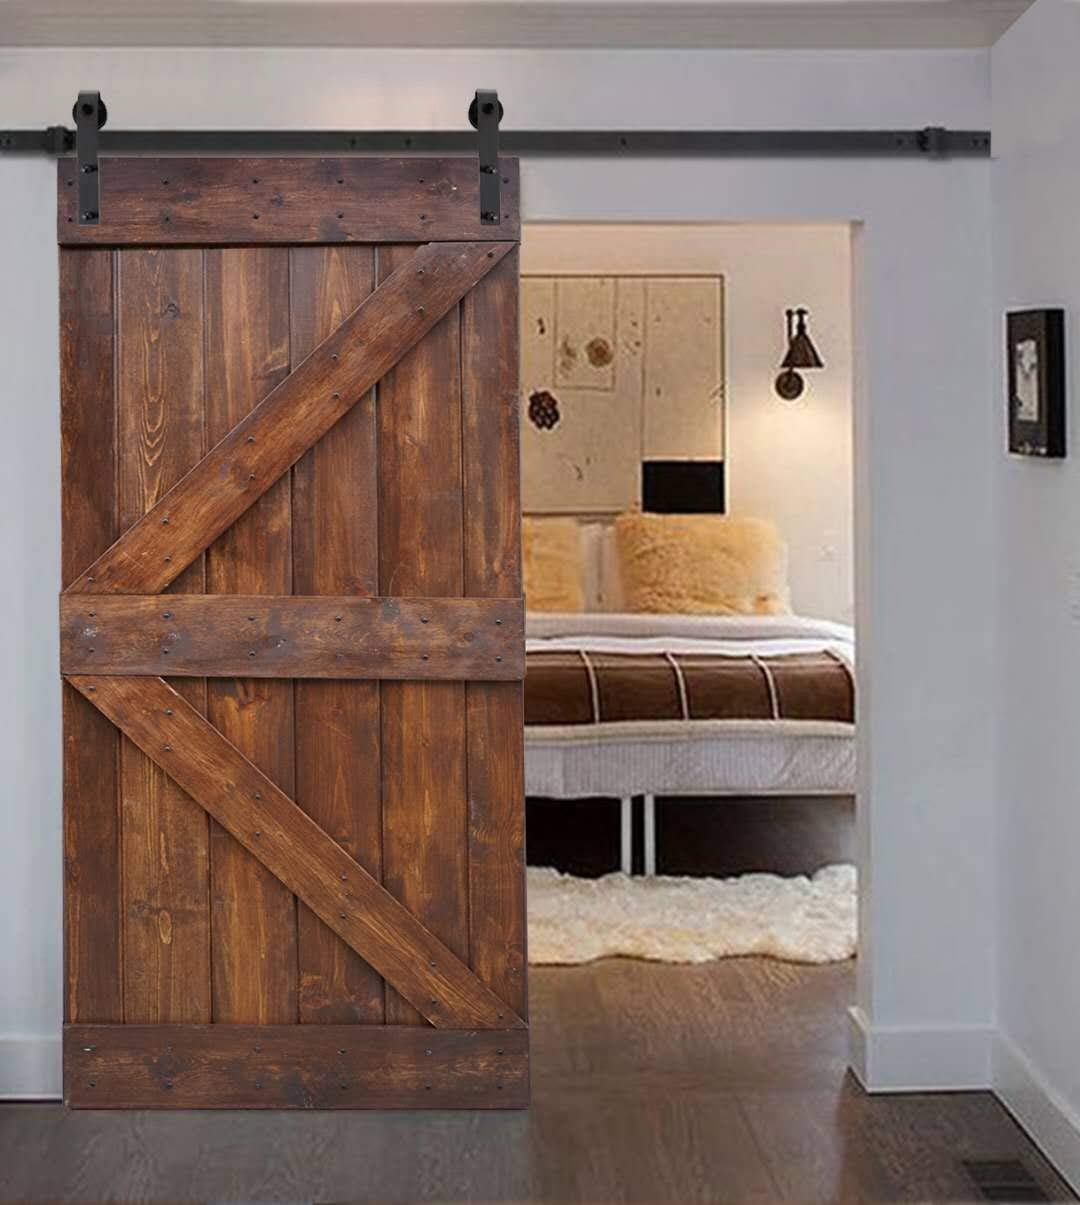 WELLHOME 6.6 FT Sliding Hardware Kit+ 36inX84in K Series DIY Solid Interior Barn Knotty Wood Painted Door (Dark walnut) by WELLHOME (Image #2)